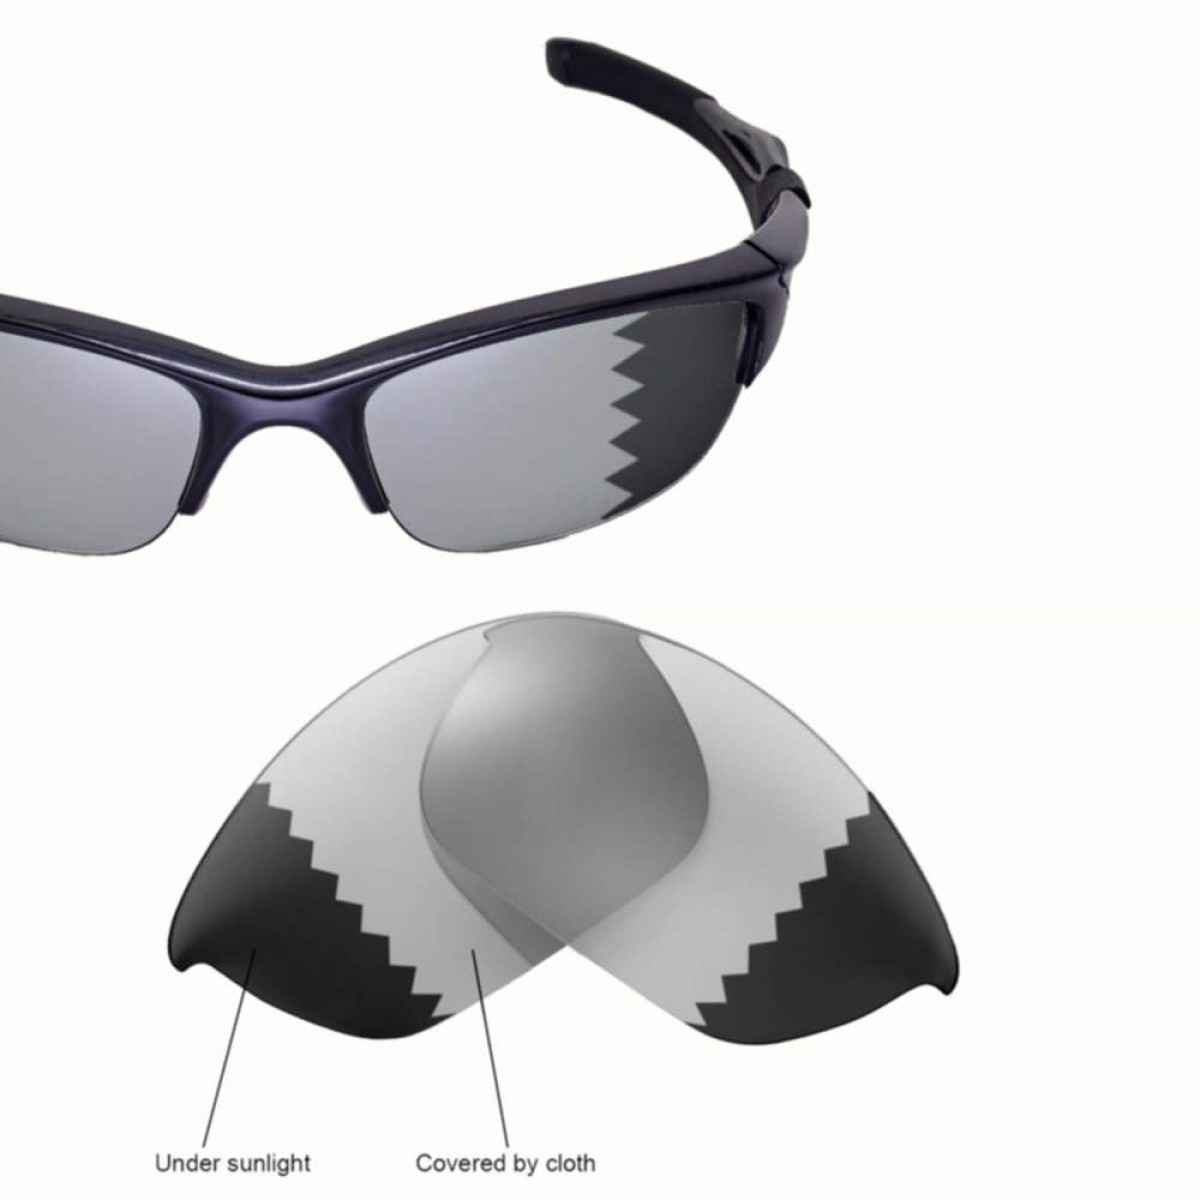 1b004111f2 Cofery Lenses Store Cofery Replacement Lenses for Oakley Half Jacket .